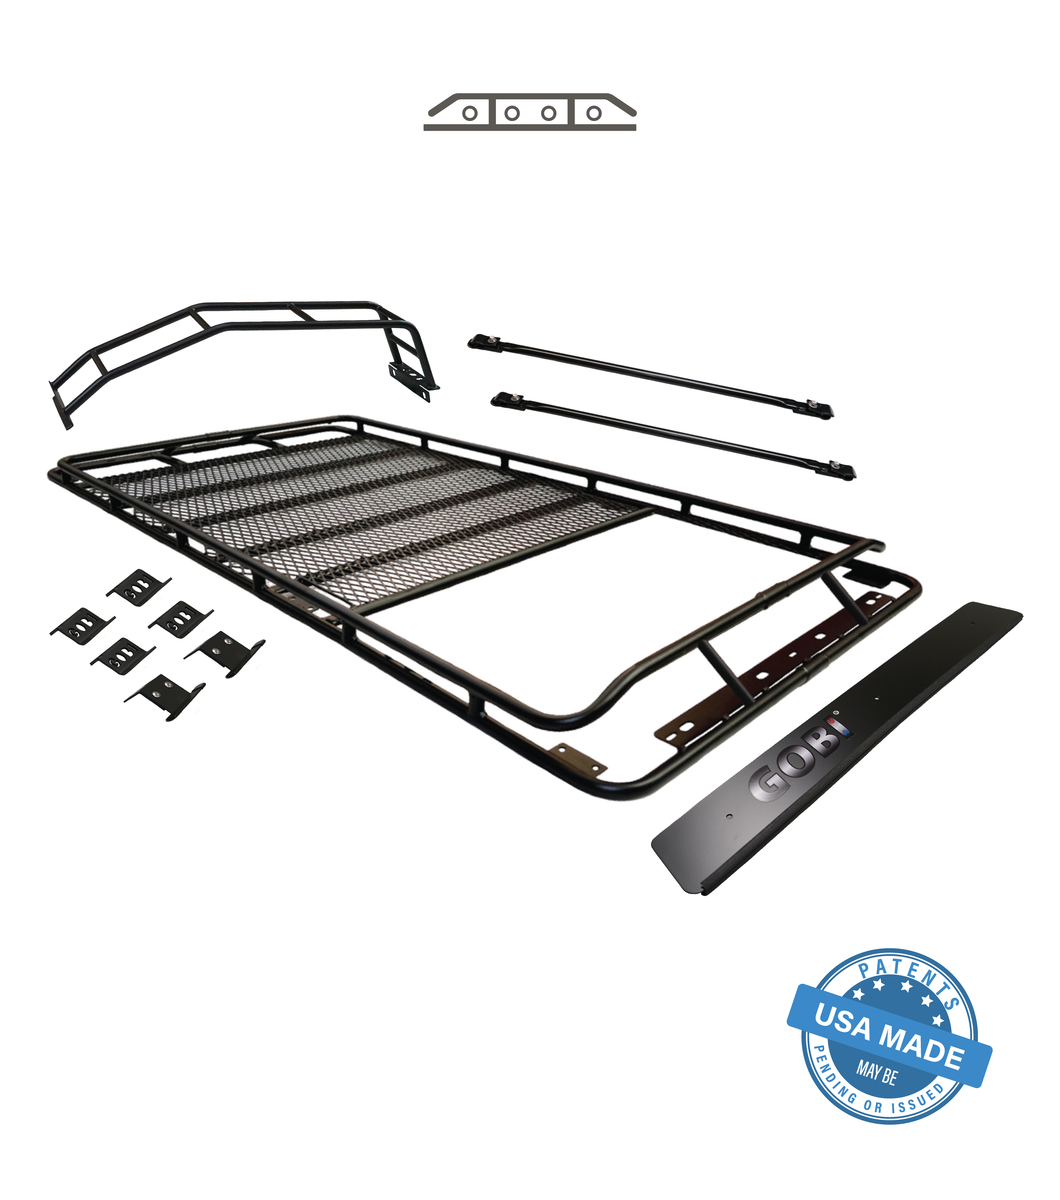 GOBI 5th Gen 4Runner Stealth Rack; Multi-Light Setup; WITH SUNROOF 2010+